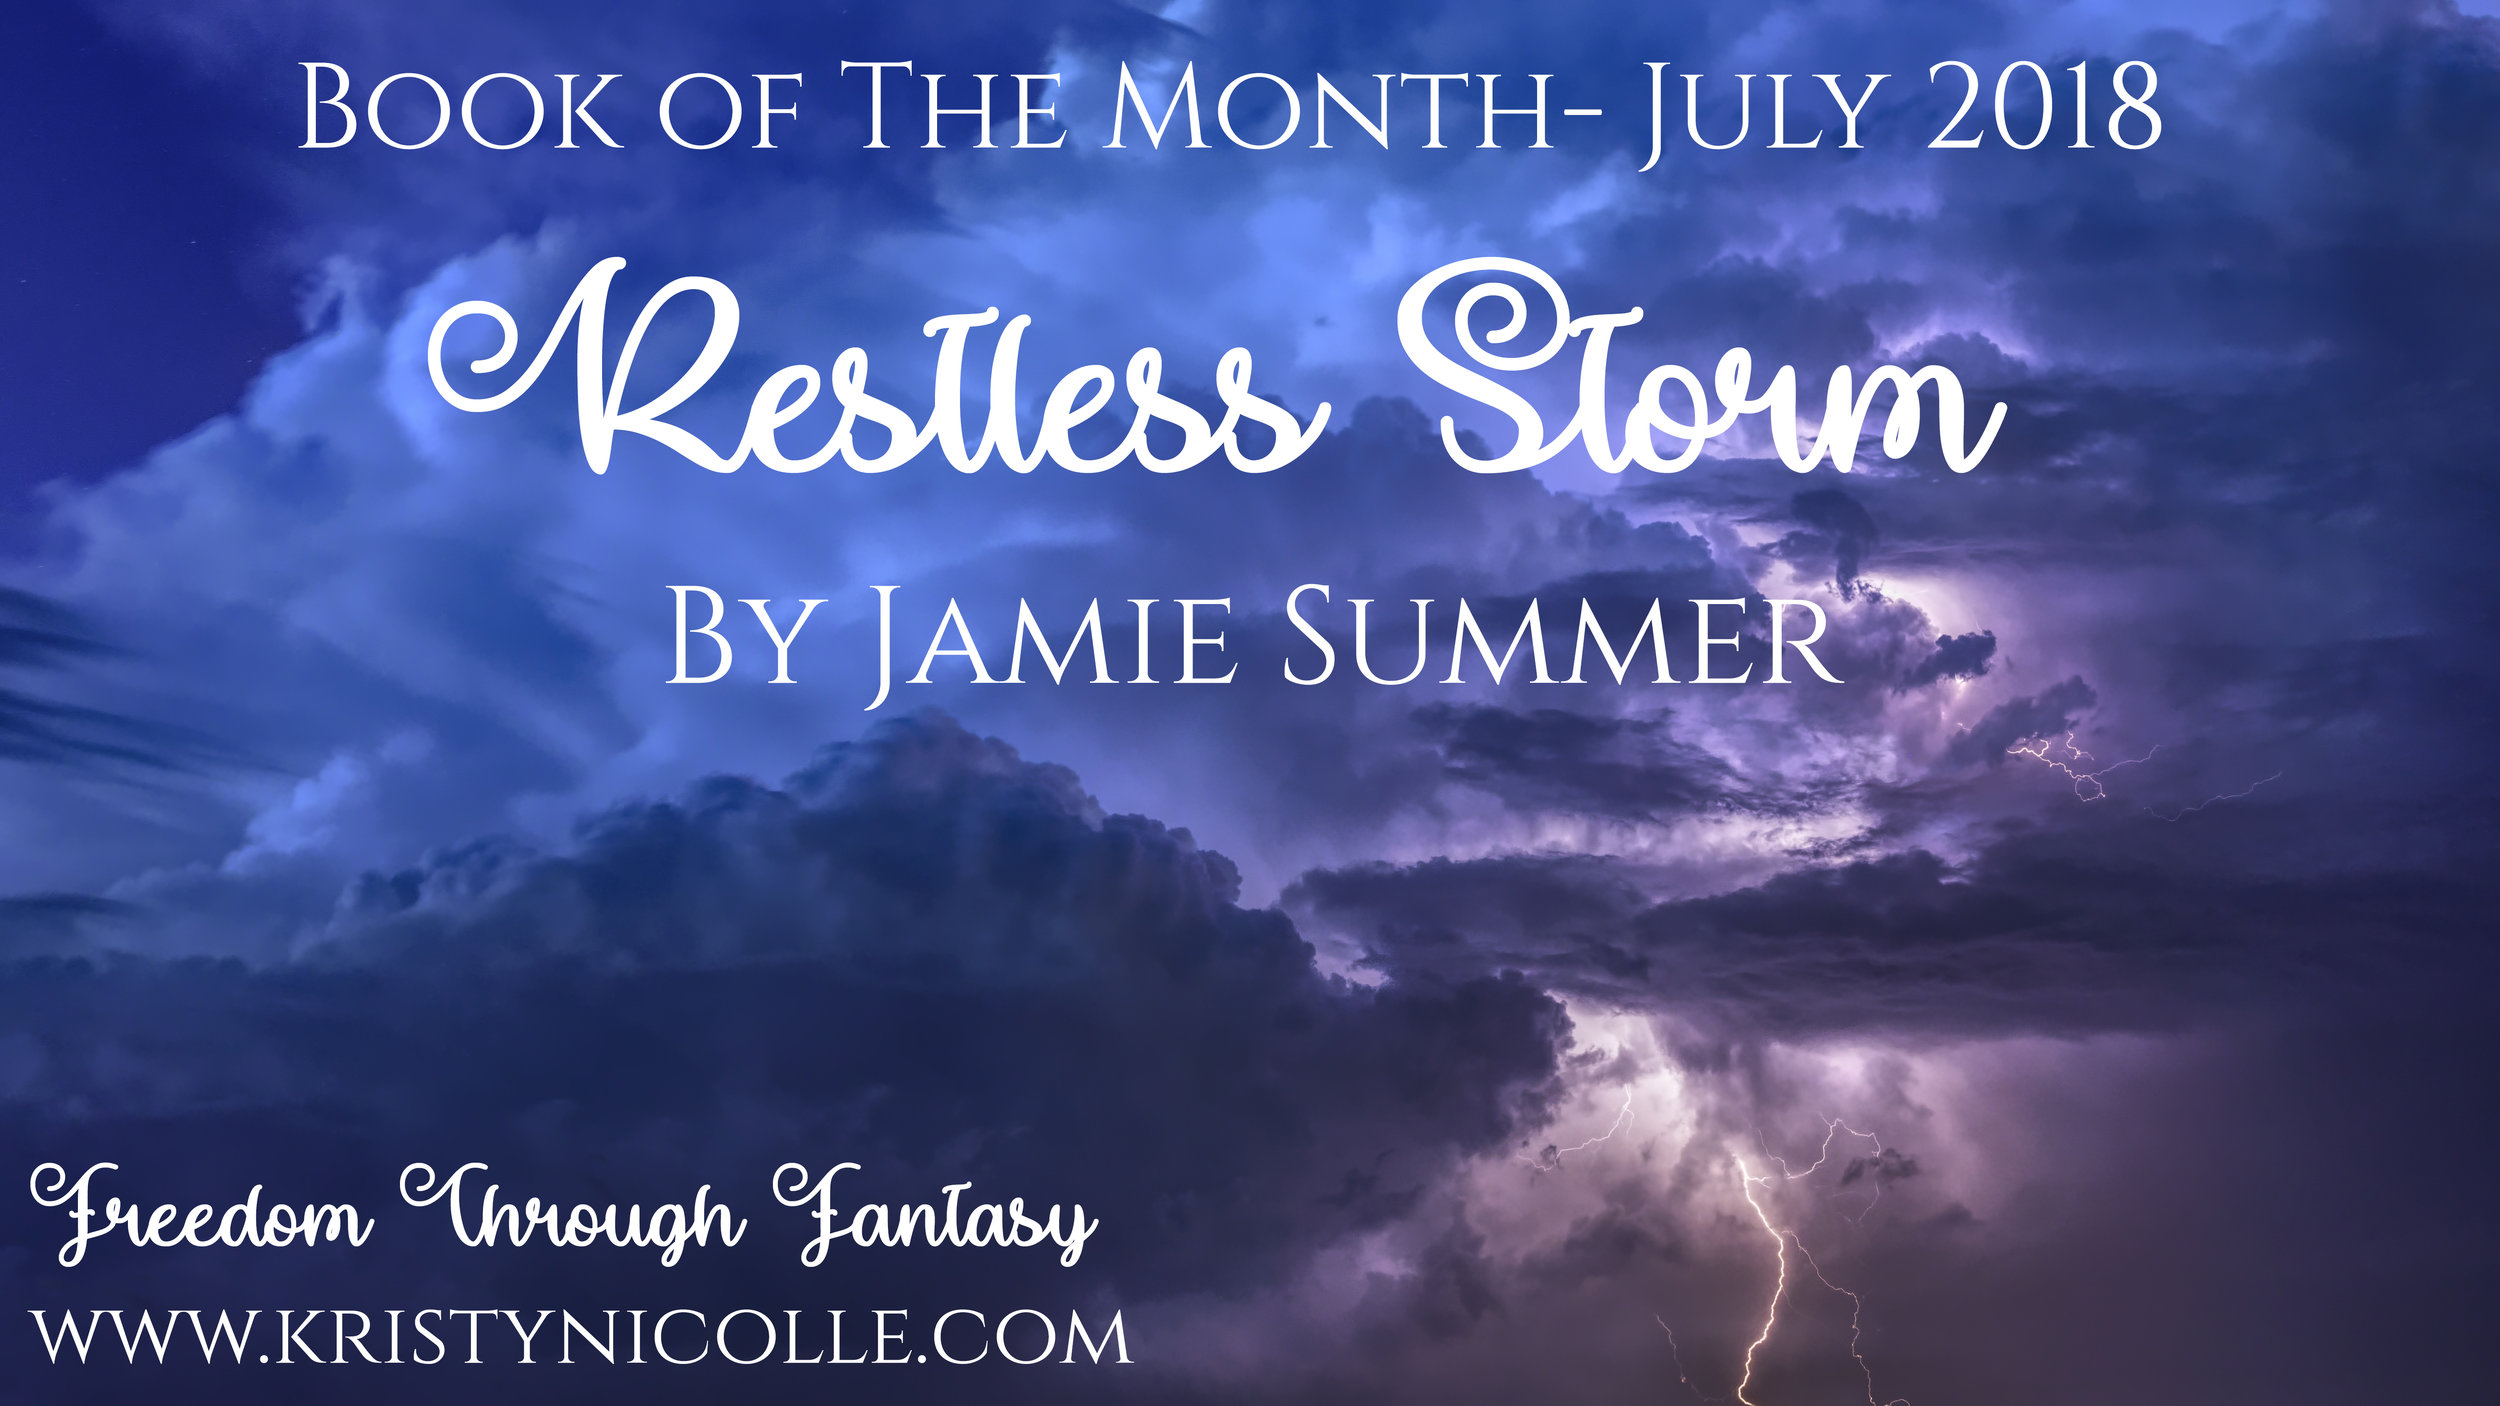 RESTLESS STORM BOOK OF THE MONTH.jpg